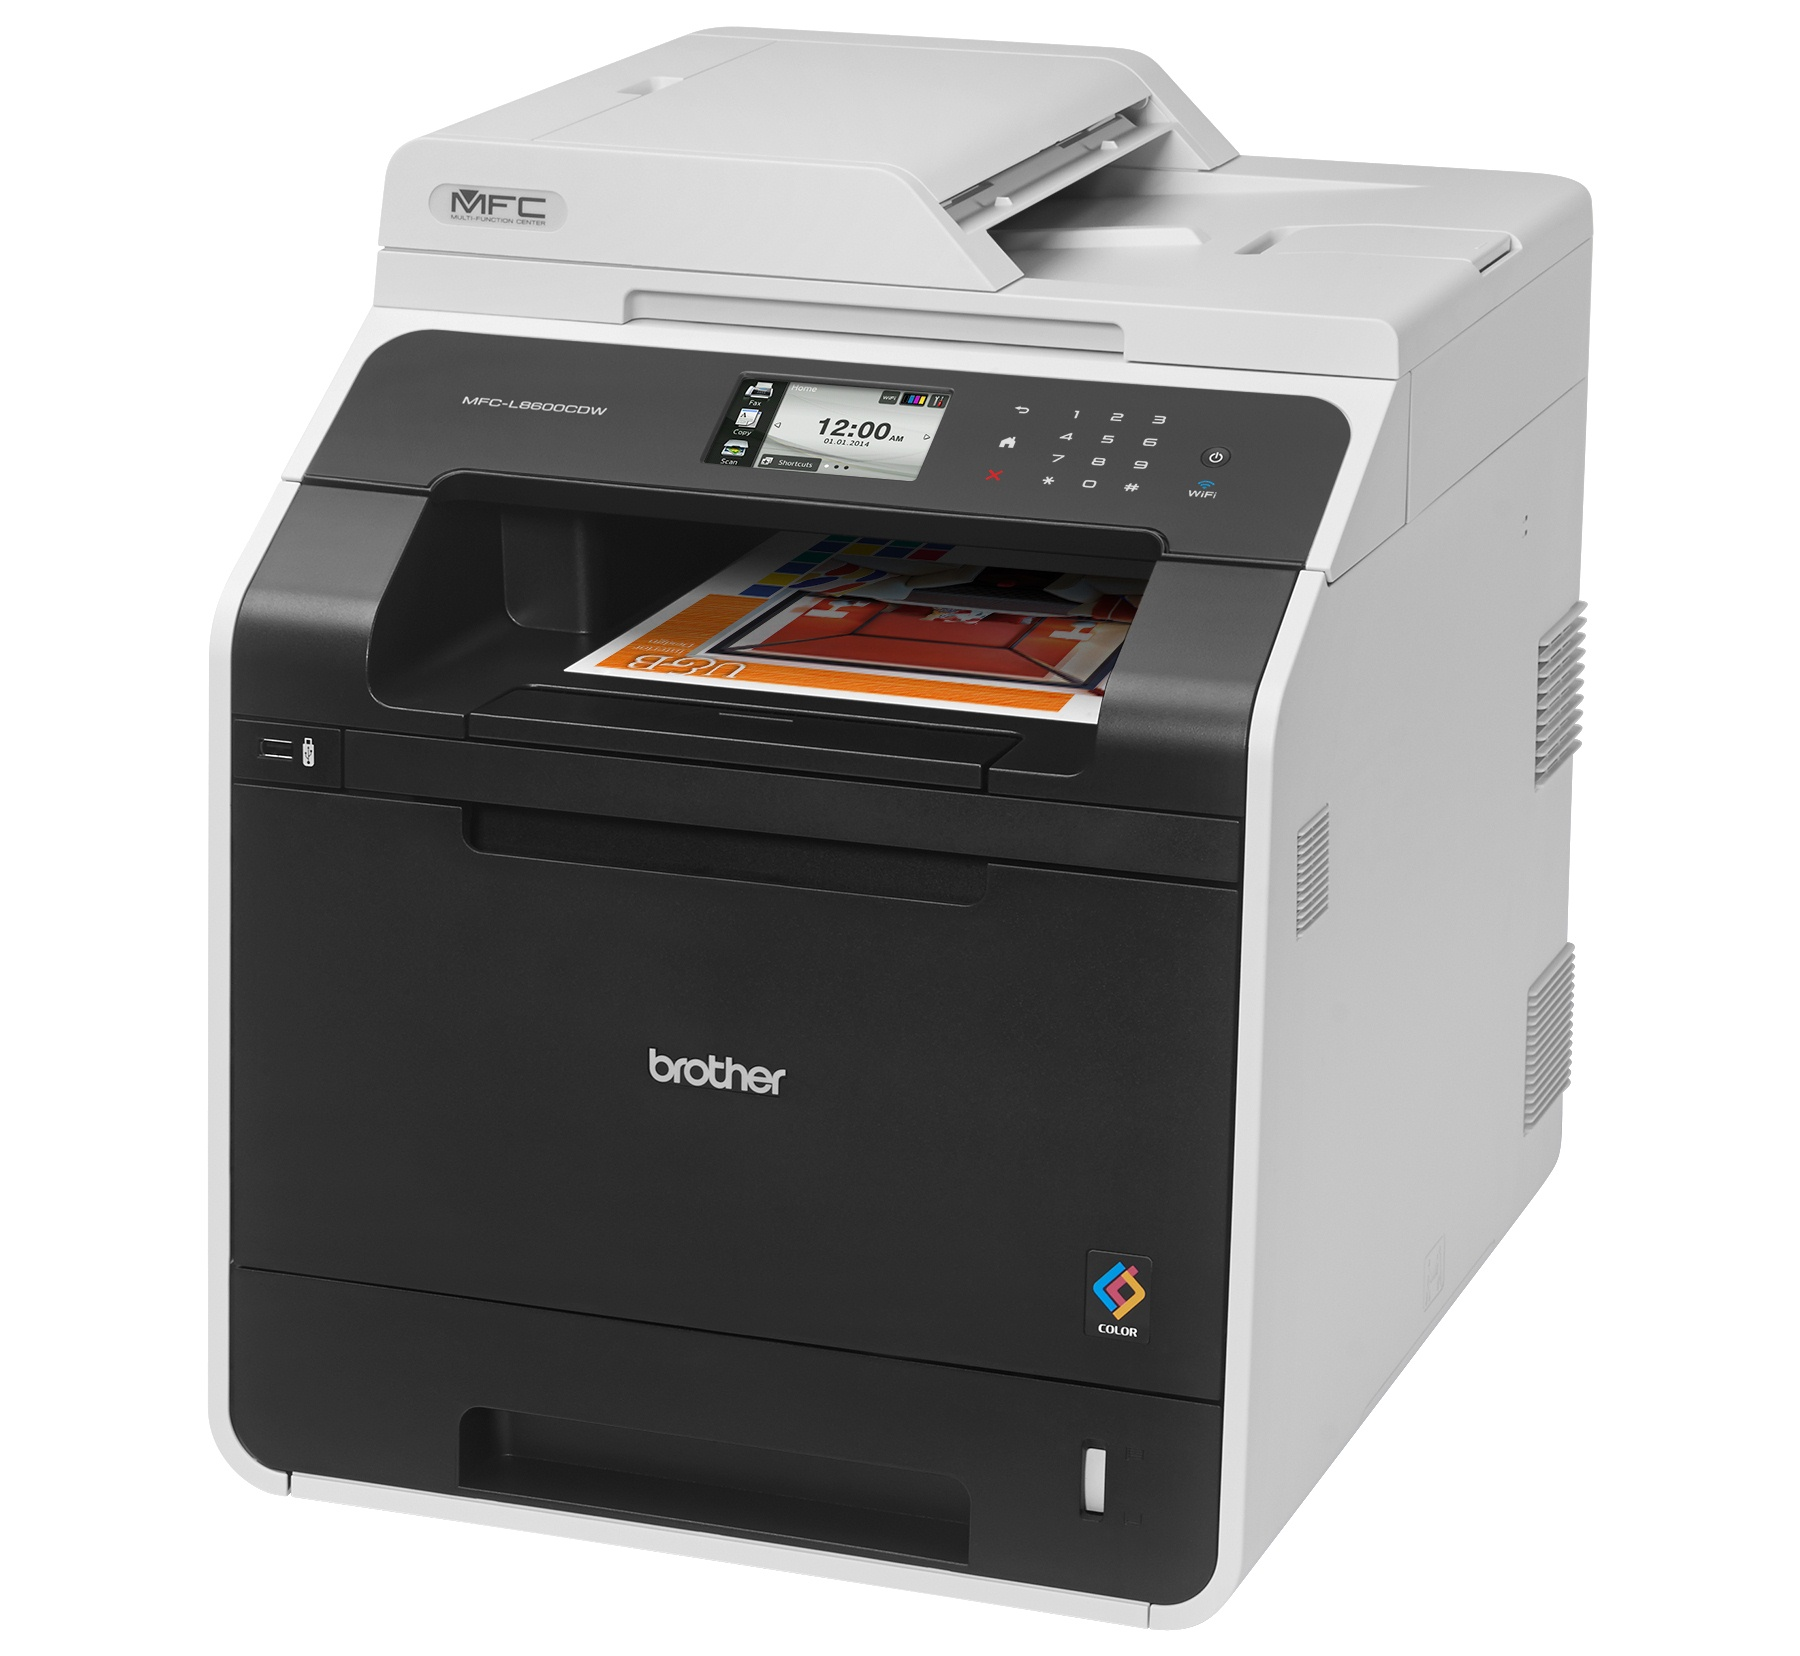 Brother MFC-L8600CDW Color Laser MFP, Fully Refurbished (MFC-L8600CDW)